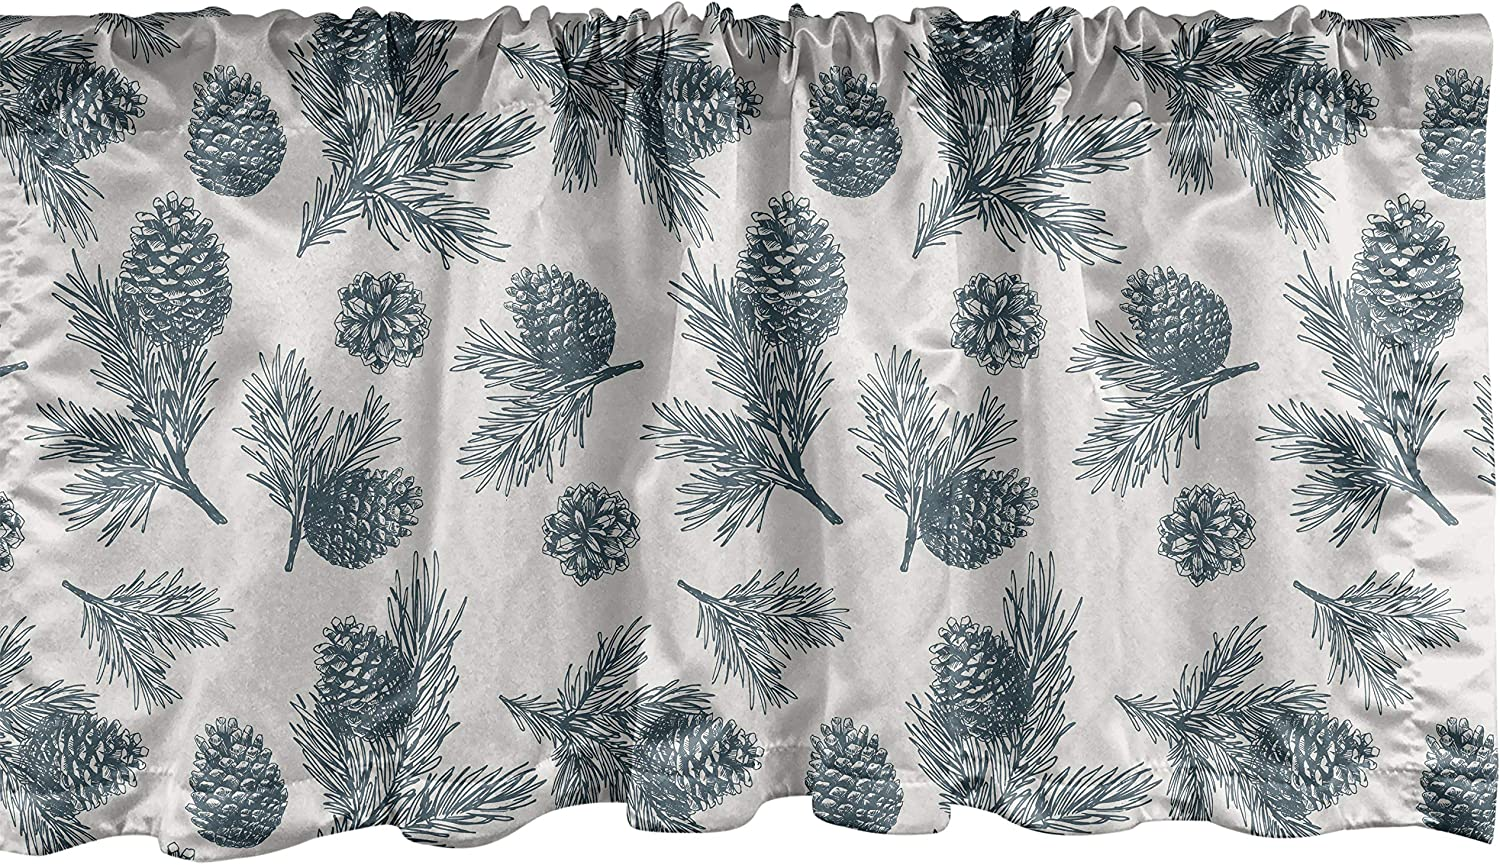 Lunarable Pine Cone Window Valance, Winter Themed Botanical Pattern and Needles Branches Print, Curtain Valance for Kitchen Bedroom Decor with Rod Pocket, 54